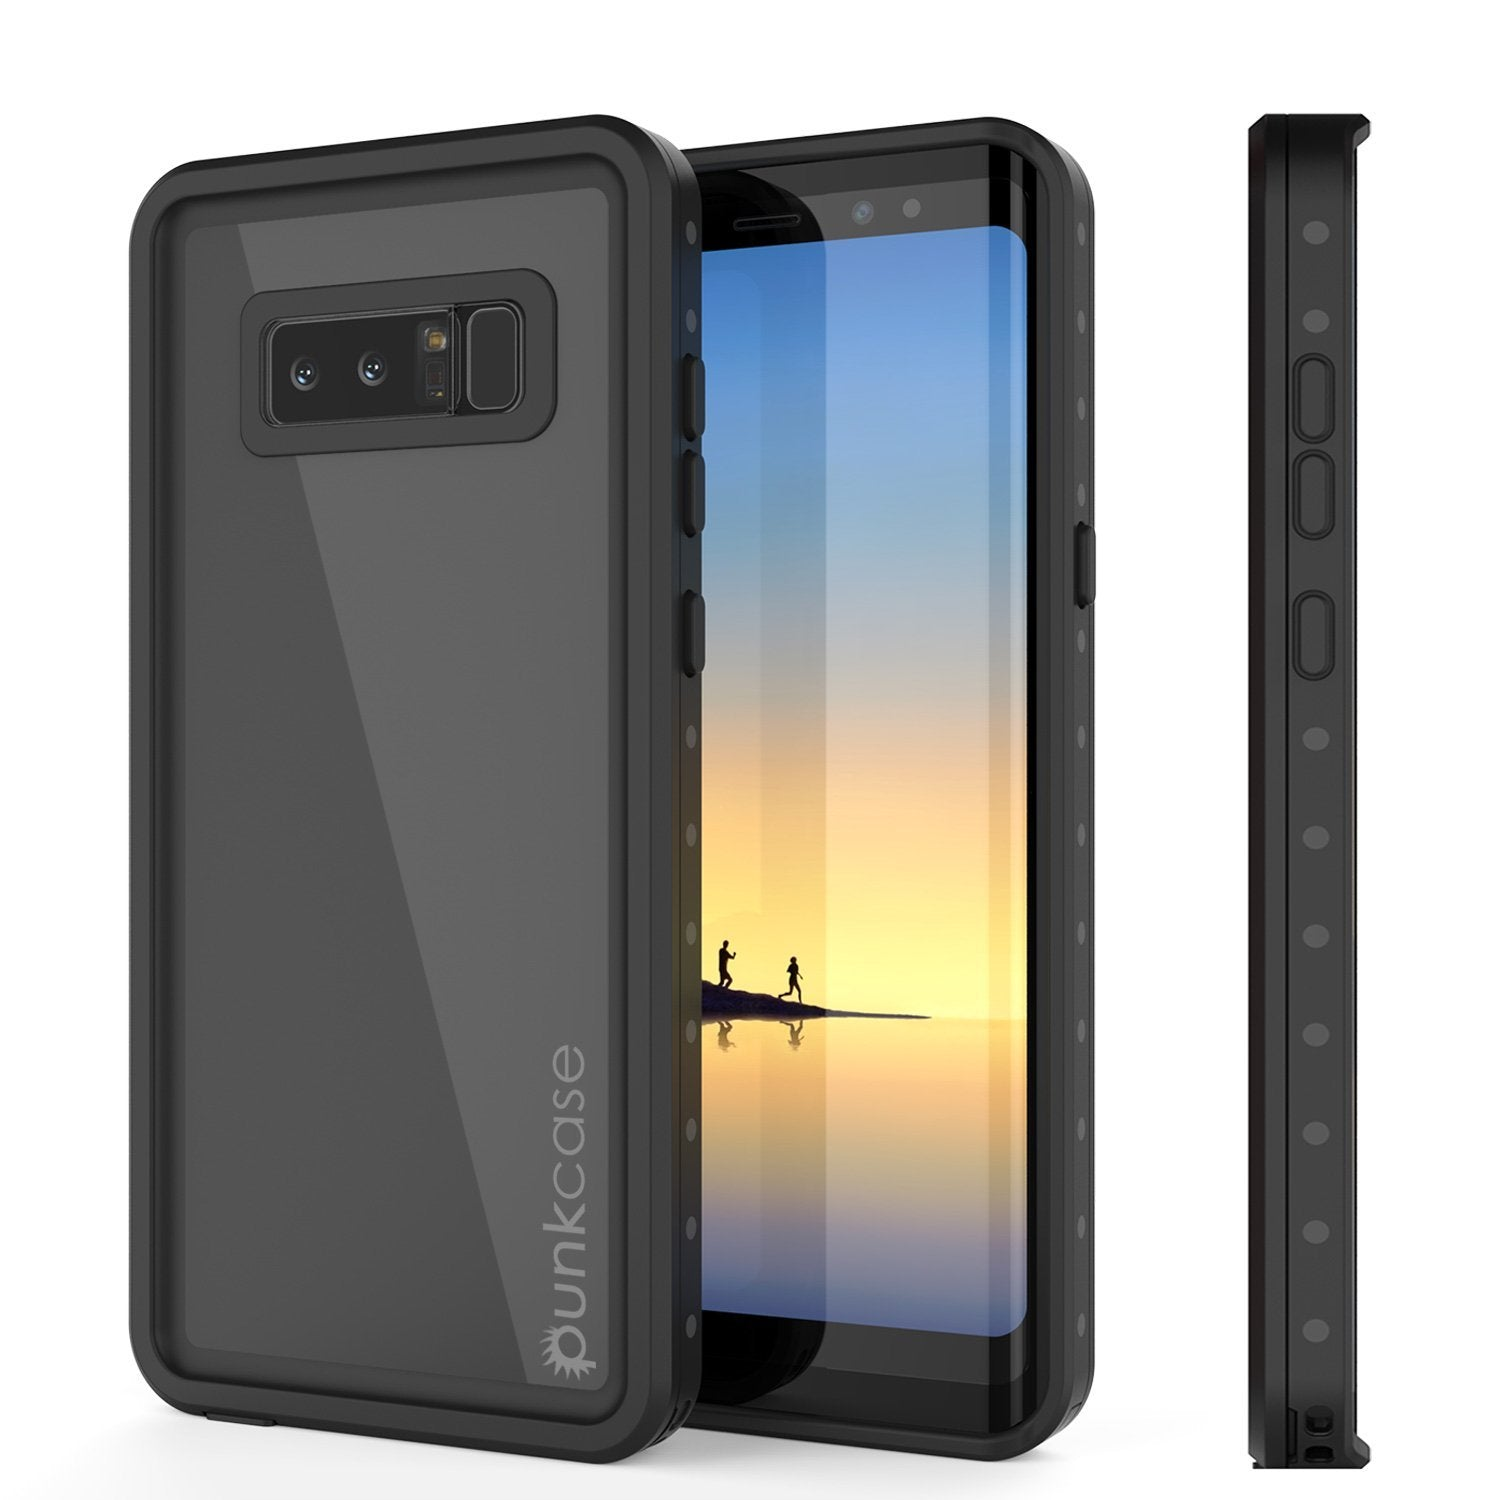 Note 8 Waterproof Case PunkCase StudStar Black Thin 6.6ft Underwater IP68 Shock/Snow Proof